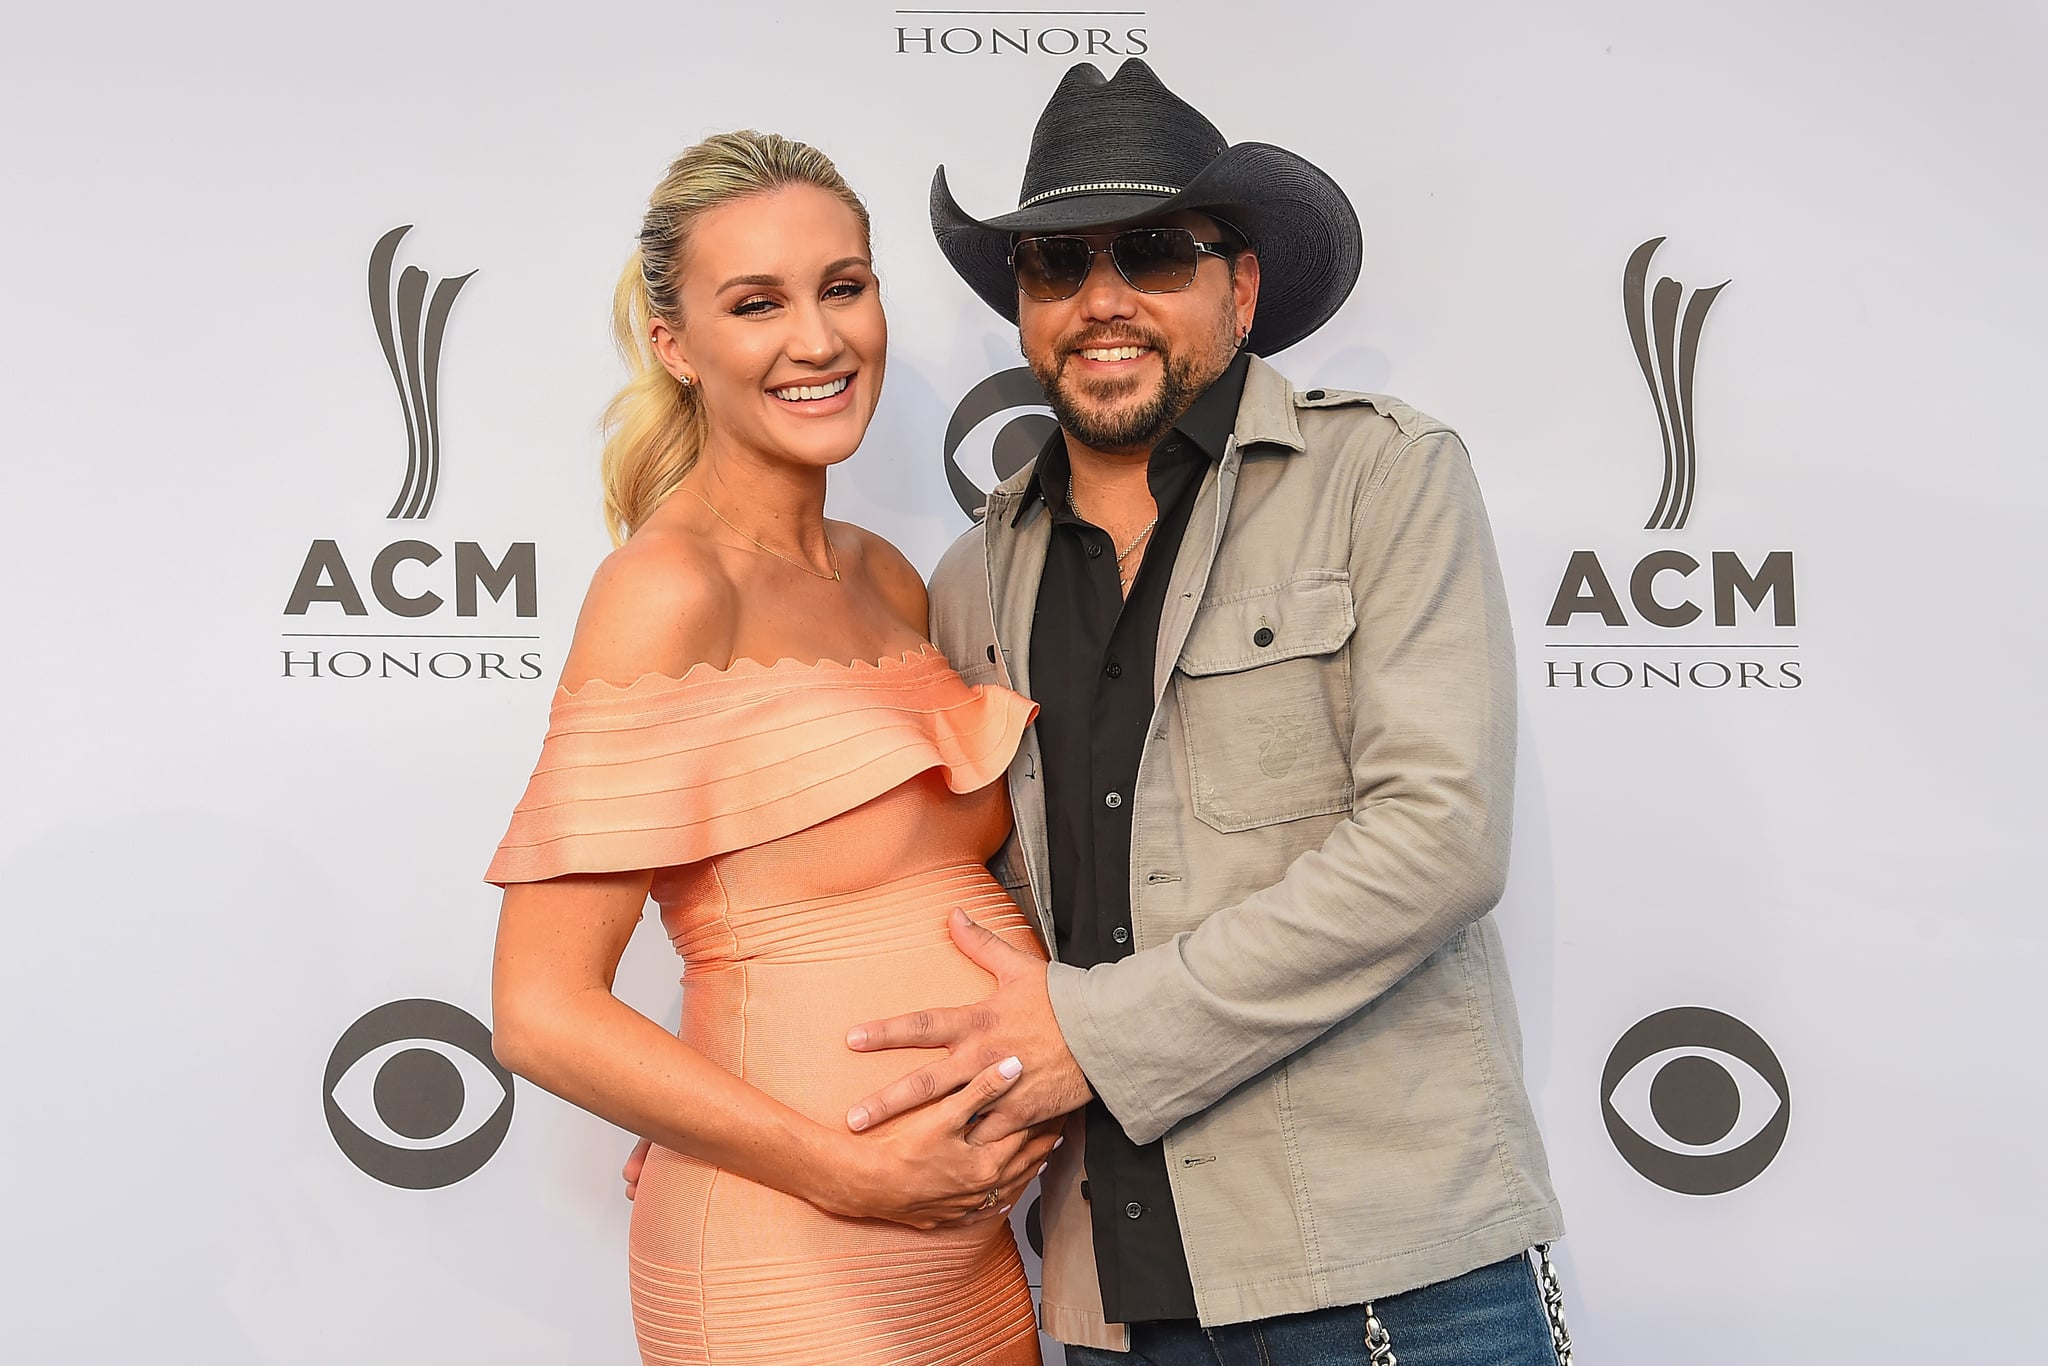 NASHVILLE, TN - AUGUST 23:  Brittany Kerr (L) and Jason Aldean attend the 11th Annual ACM honours at the Ryman Auditorium on August 23, 2017 in Nashville, Tennessee.  (Photo by Erika Goldring/FilmMagic)